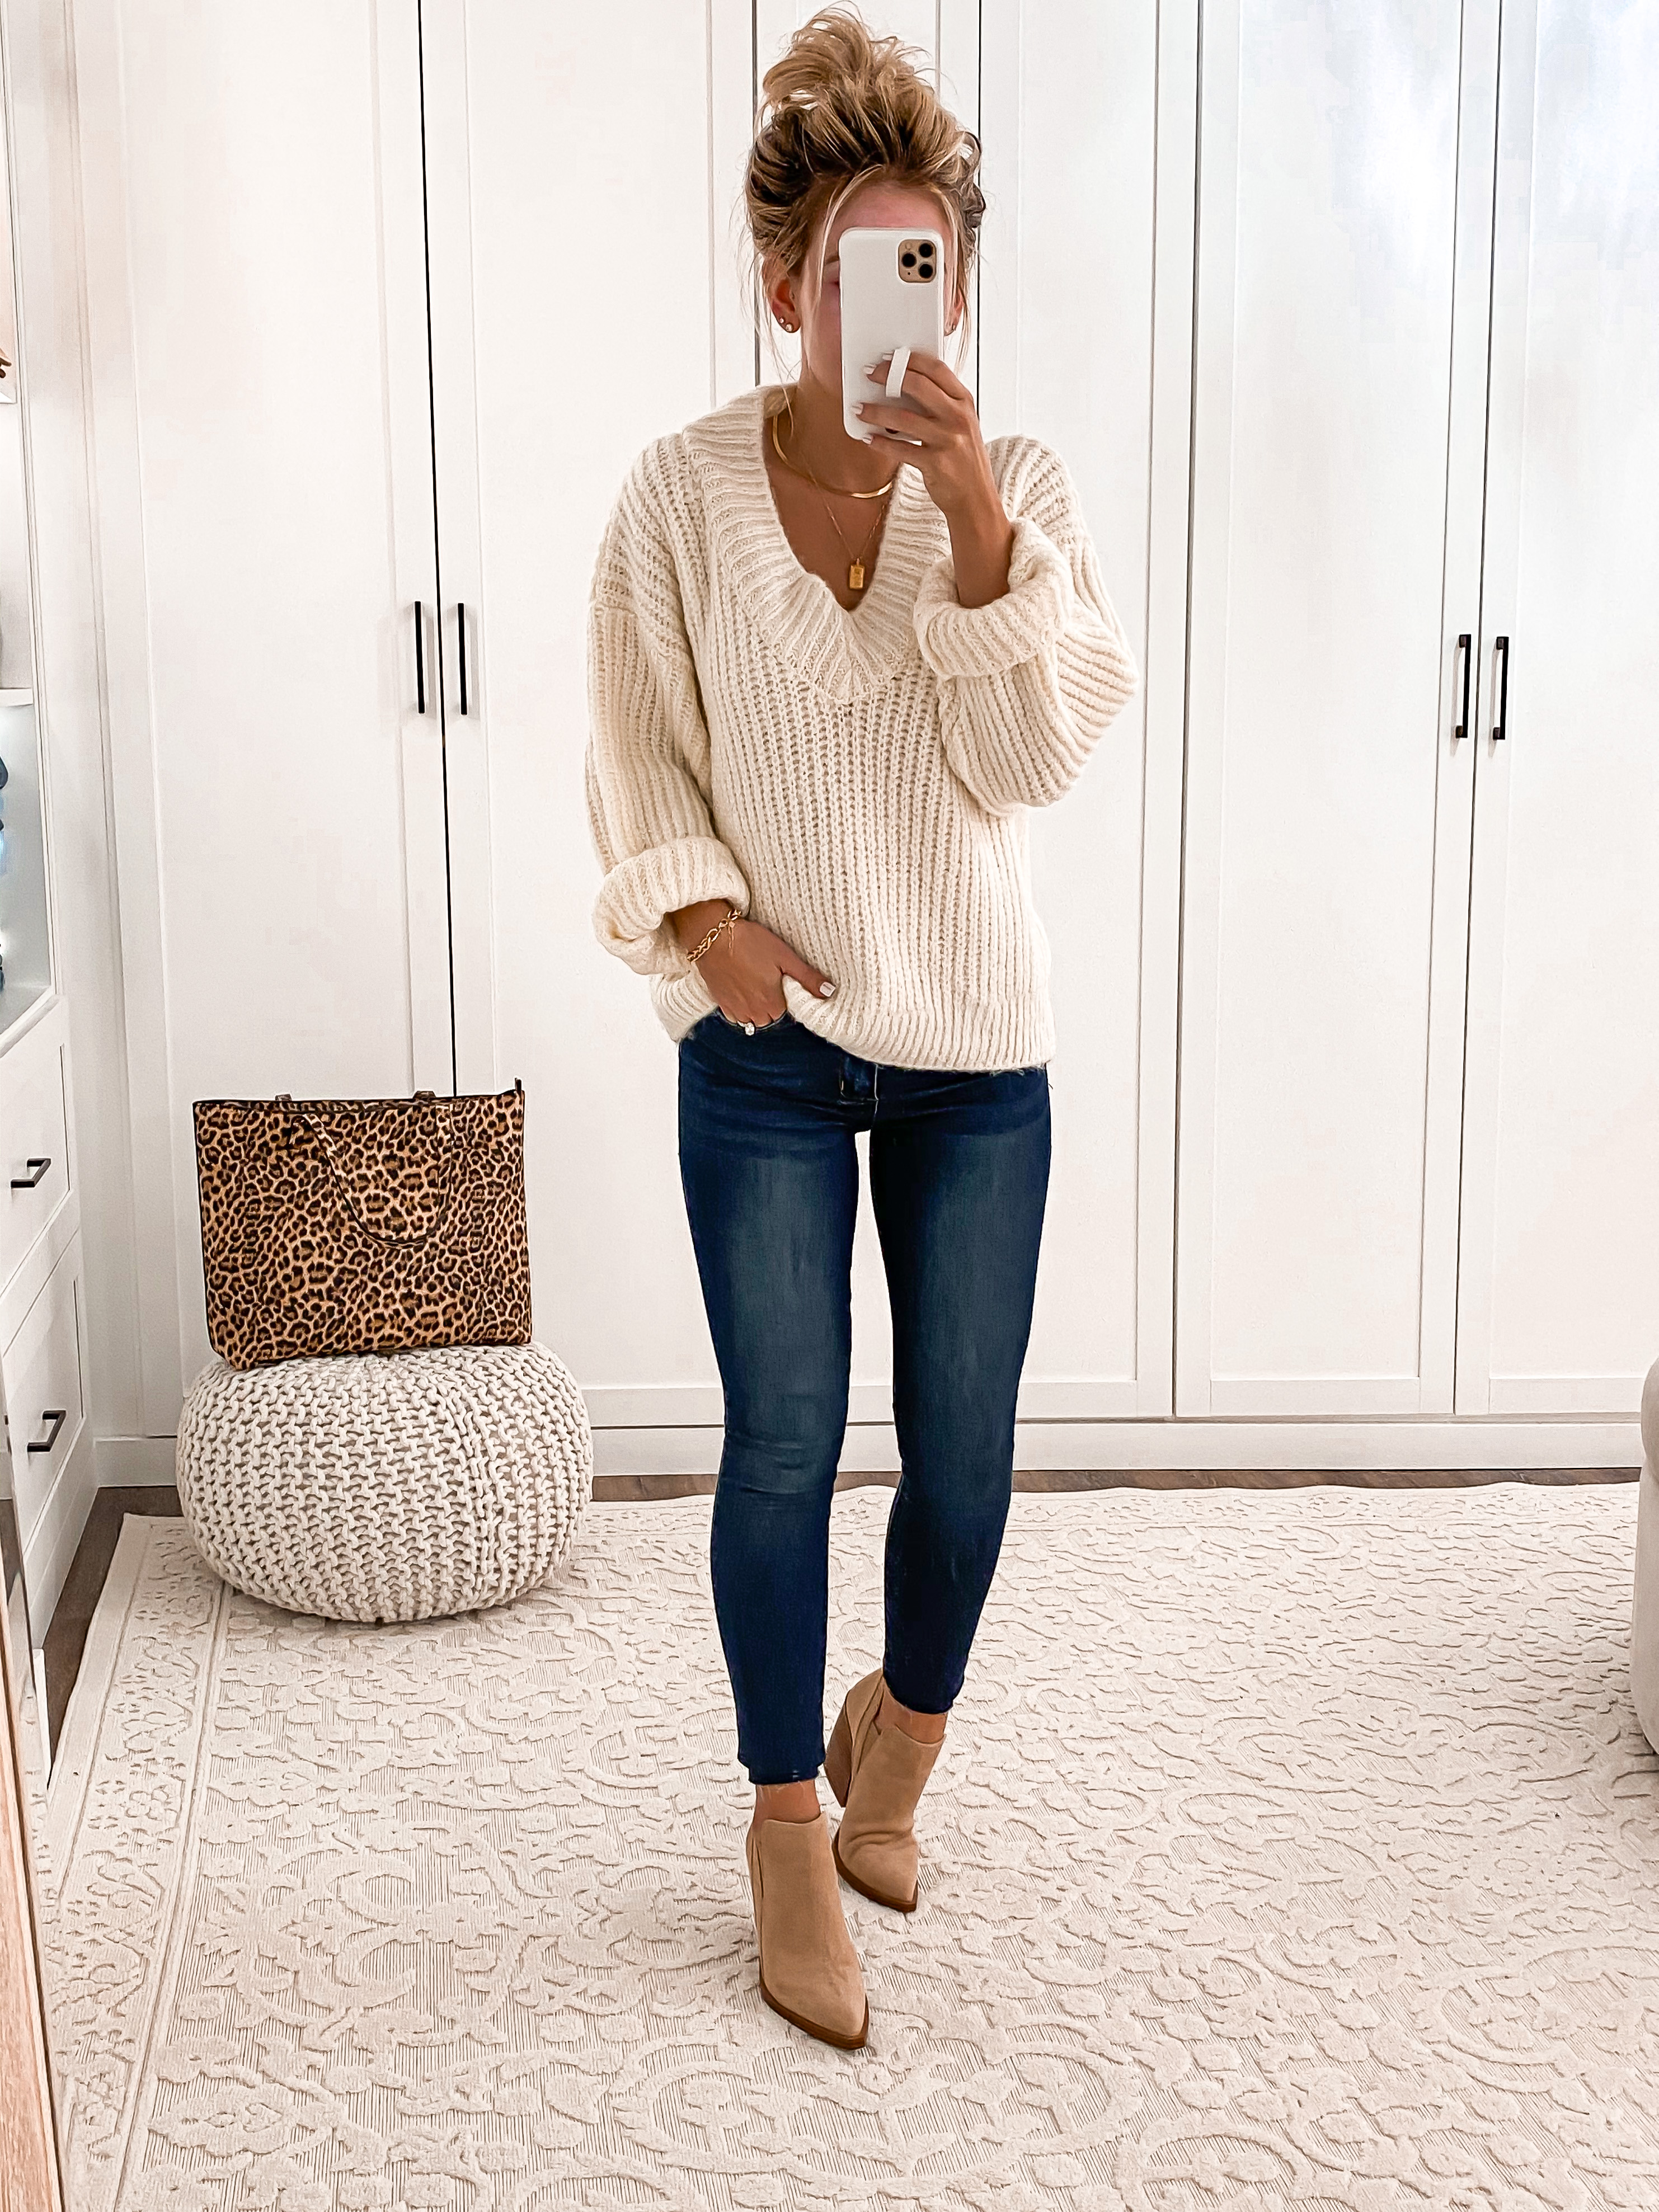 Nordstrom Anniversary Sale 2020 Nsale Laura Beverlin Fall outfit ideas12